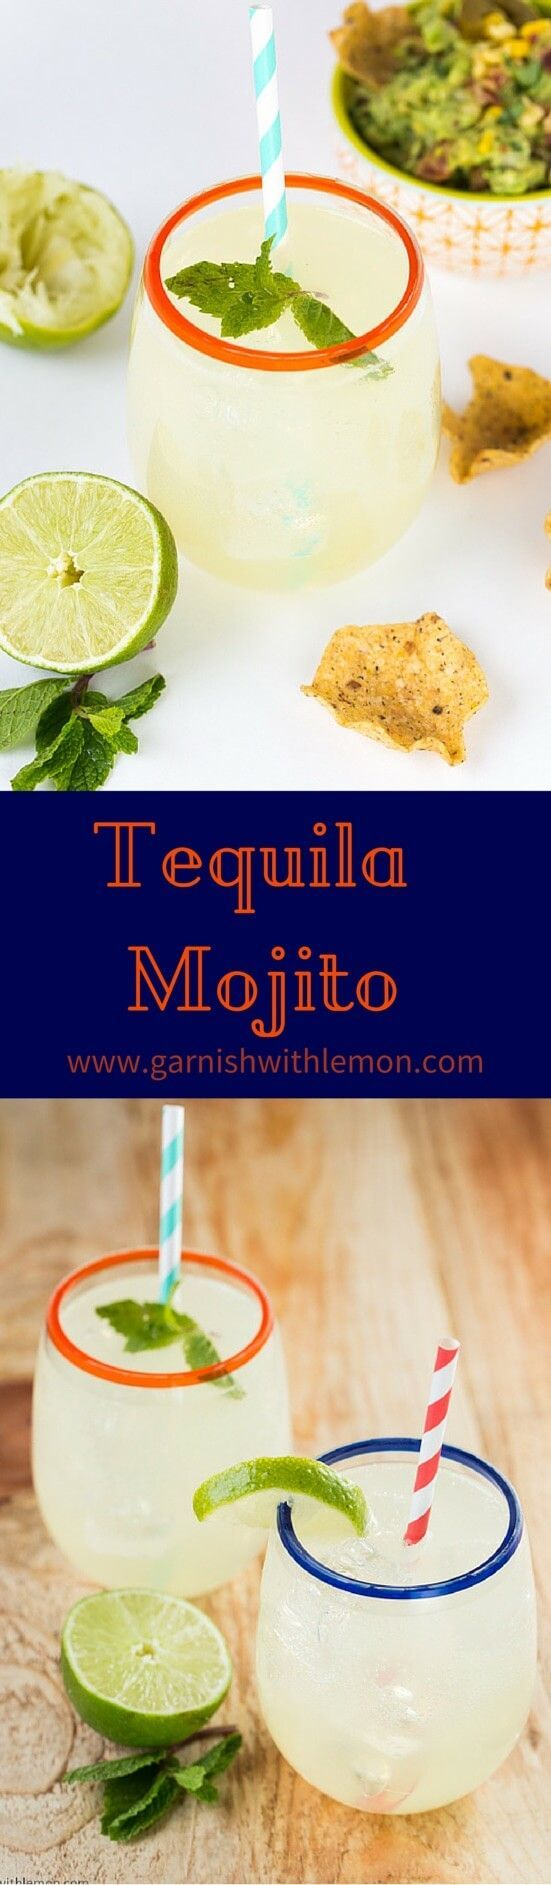 Tequila Mojito Recipe- A Tequila Mojito is a refreshing cocktail for summer that combines the best of margaritas and mojitos!